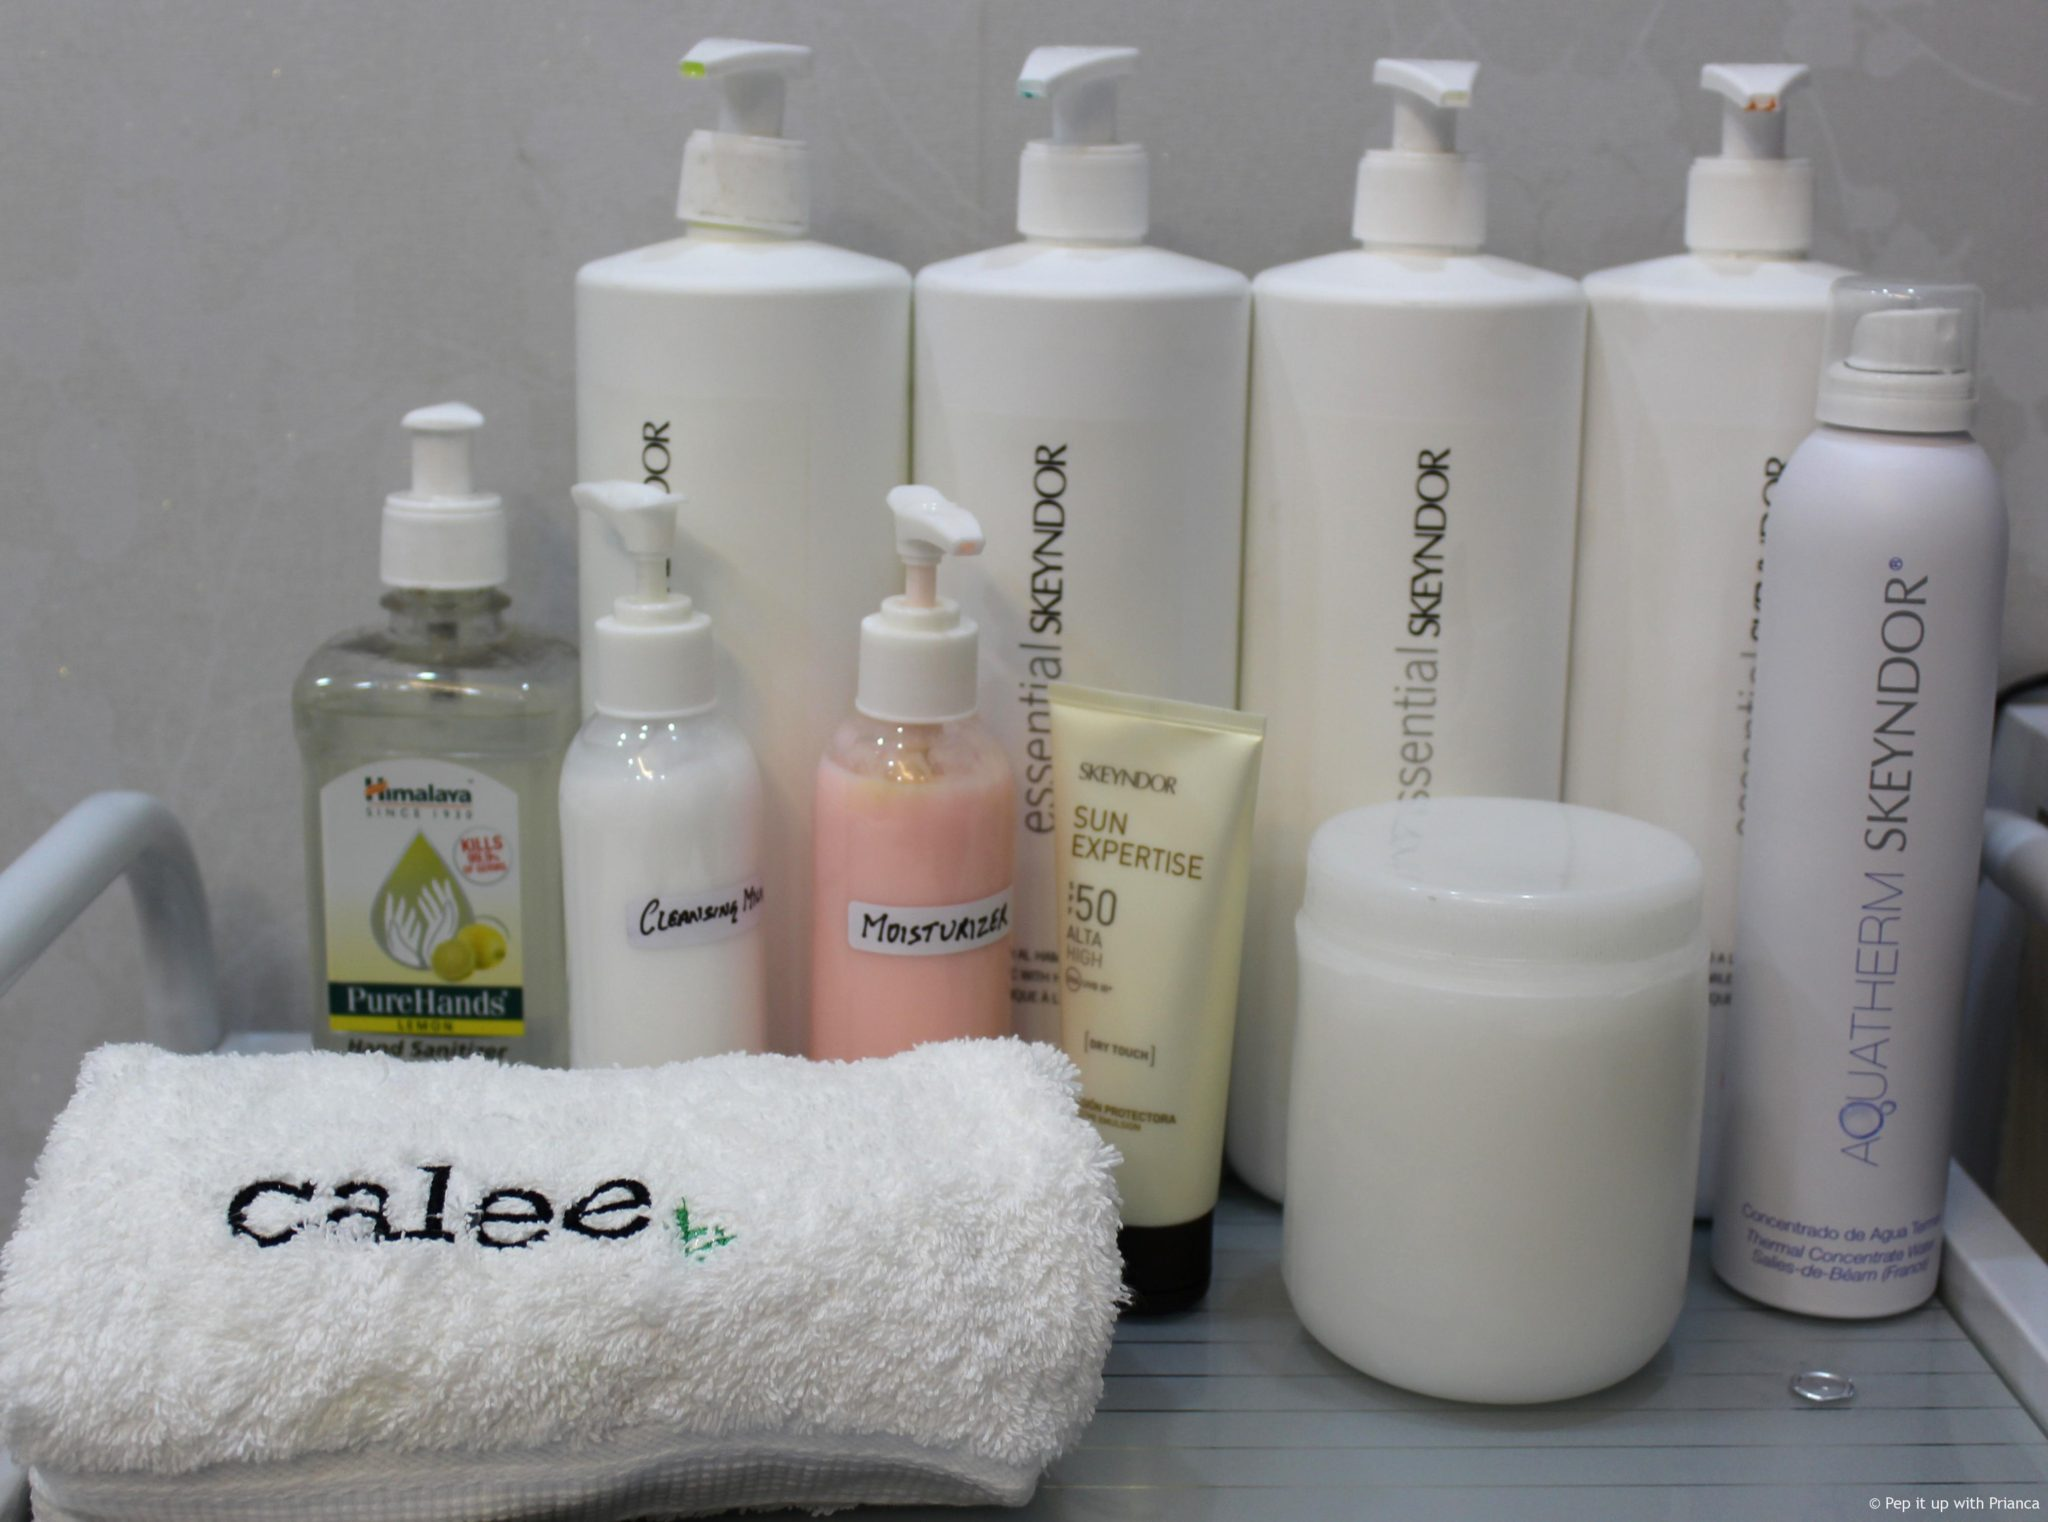 Calee offers skin care solutions